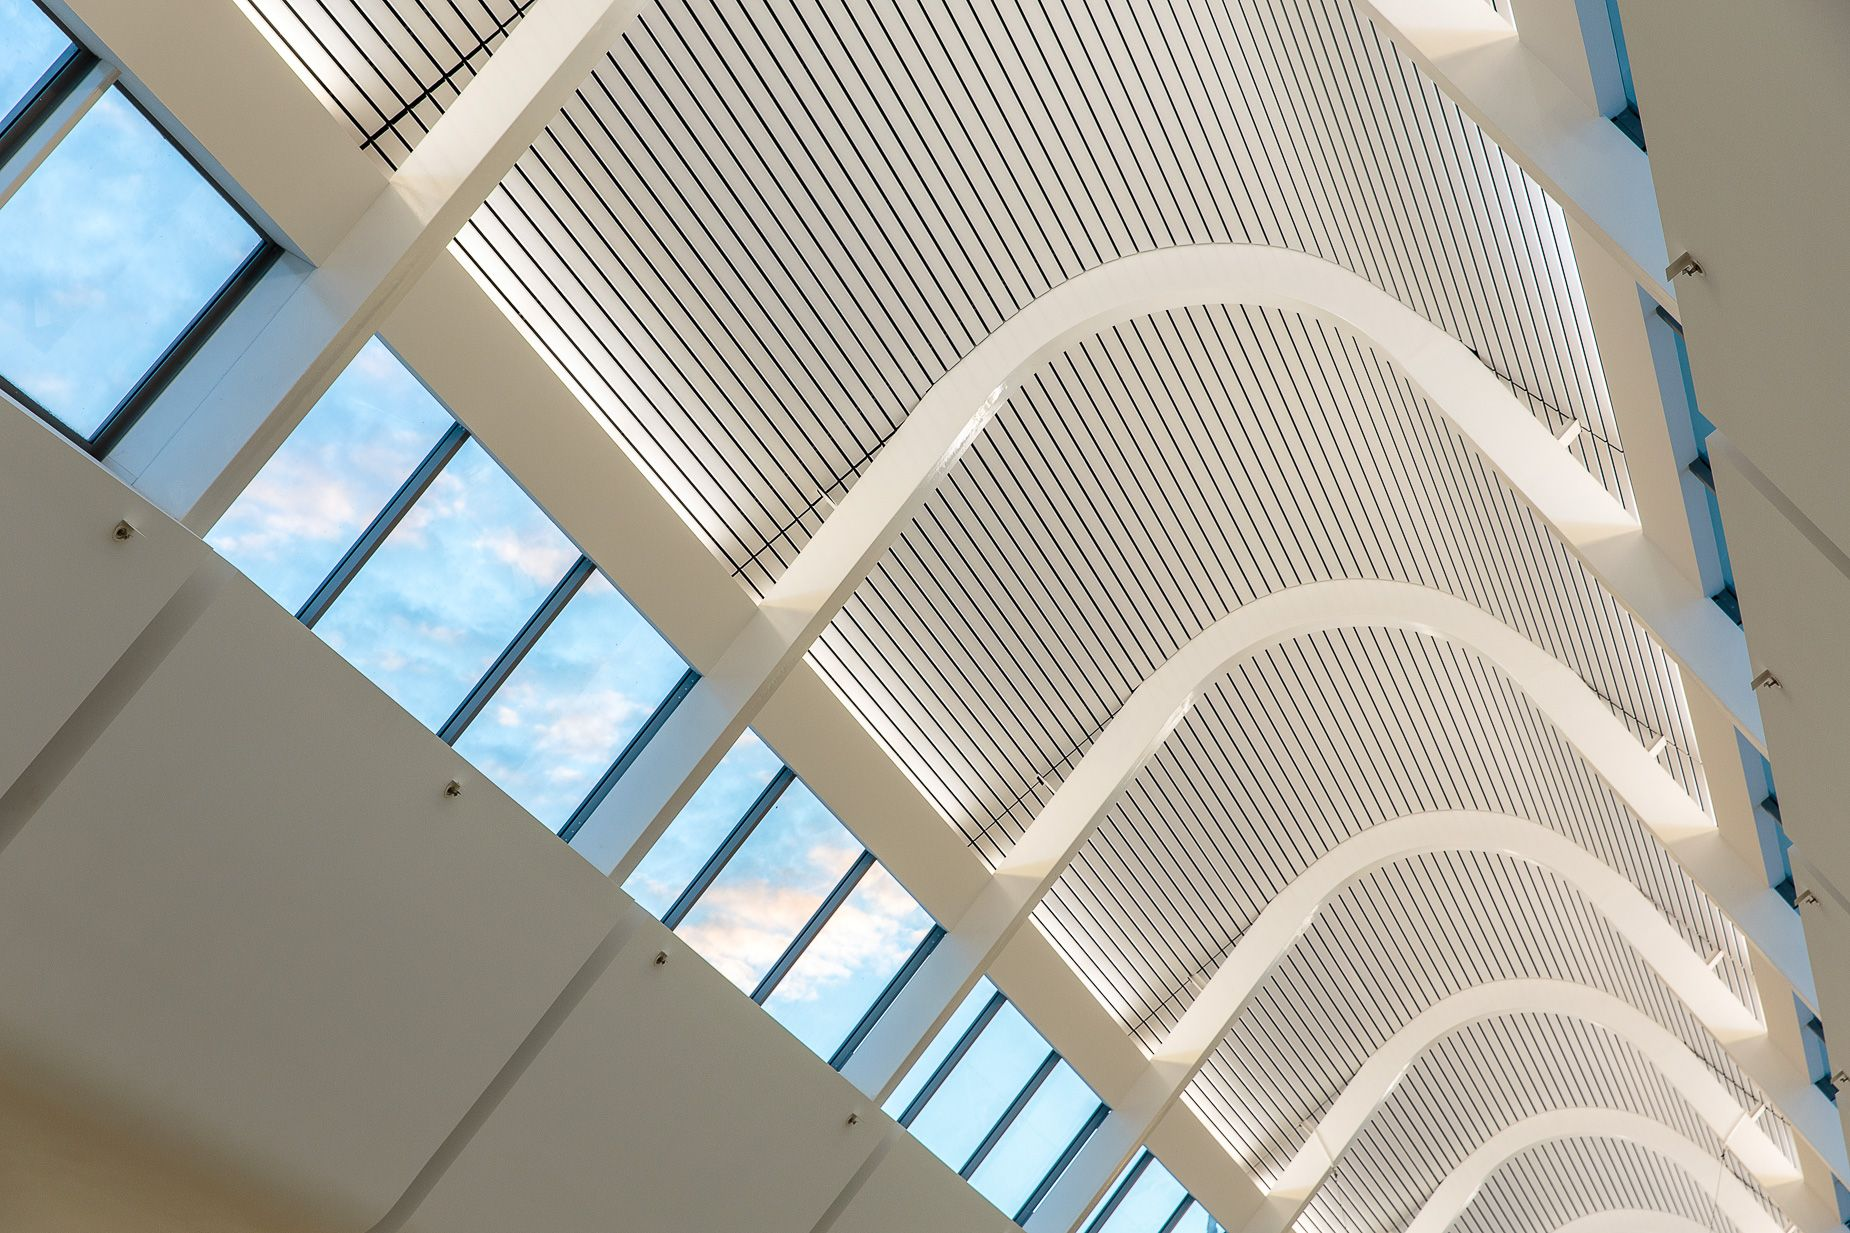 Project photography of the galleria skylight detail at